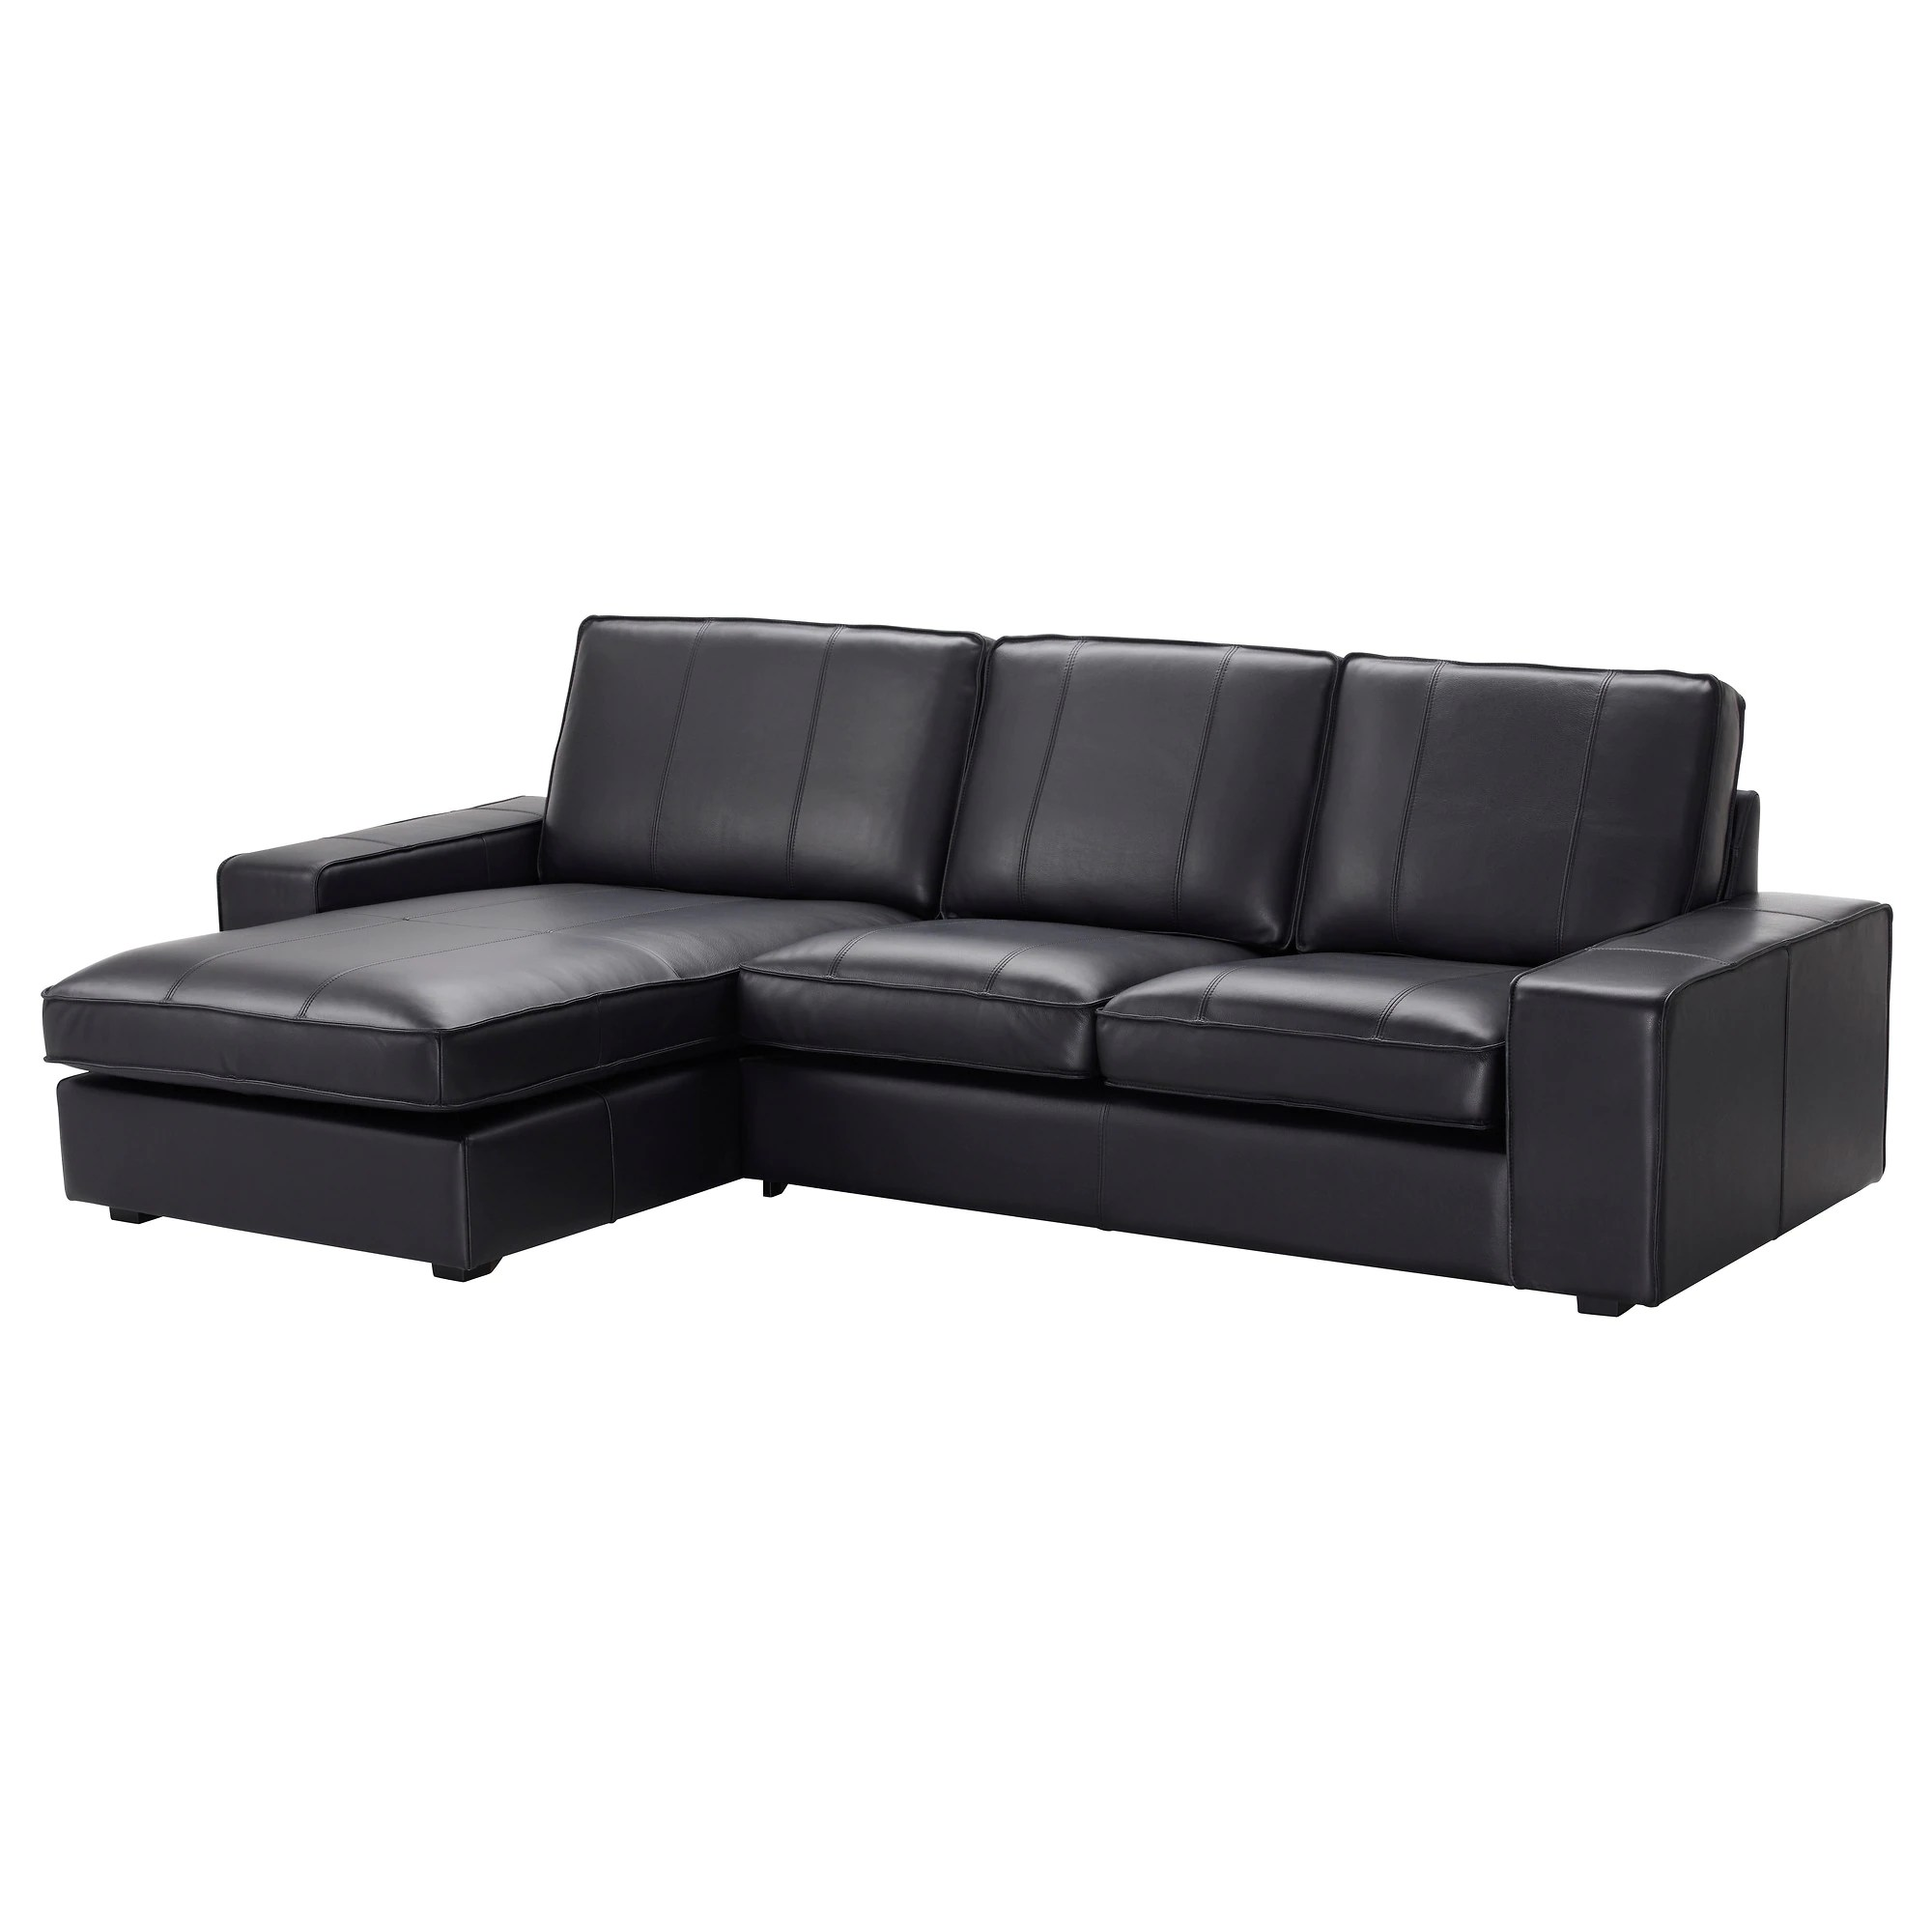 Kivik Sofa Leather Kivik Sofa With Chaise Grann Bomstad Grann Bomstad Black